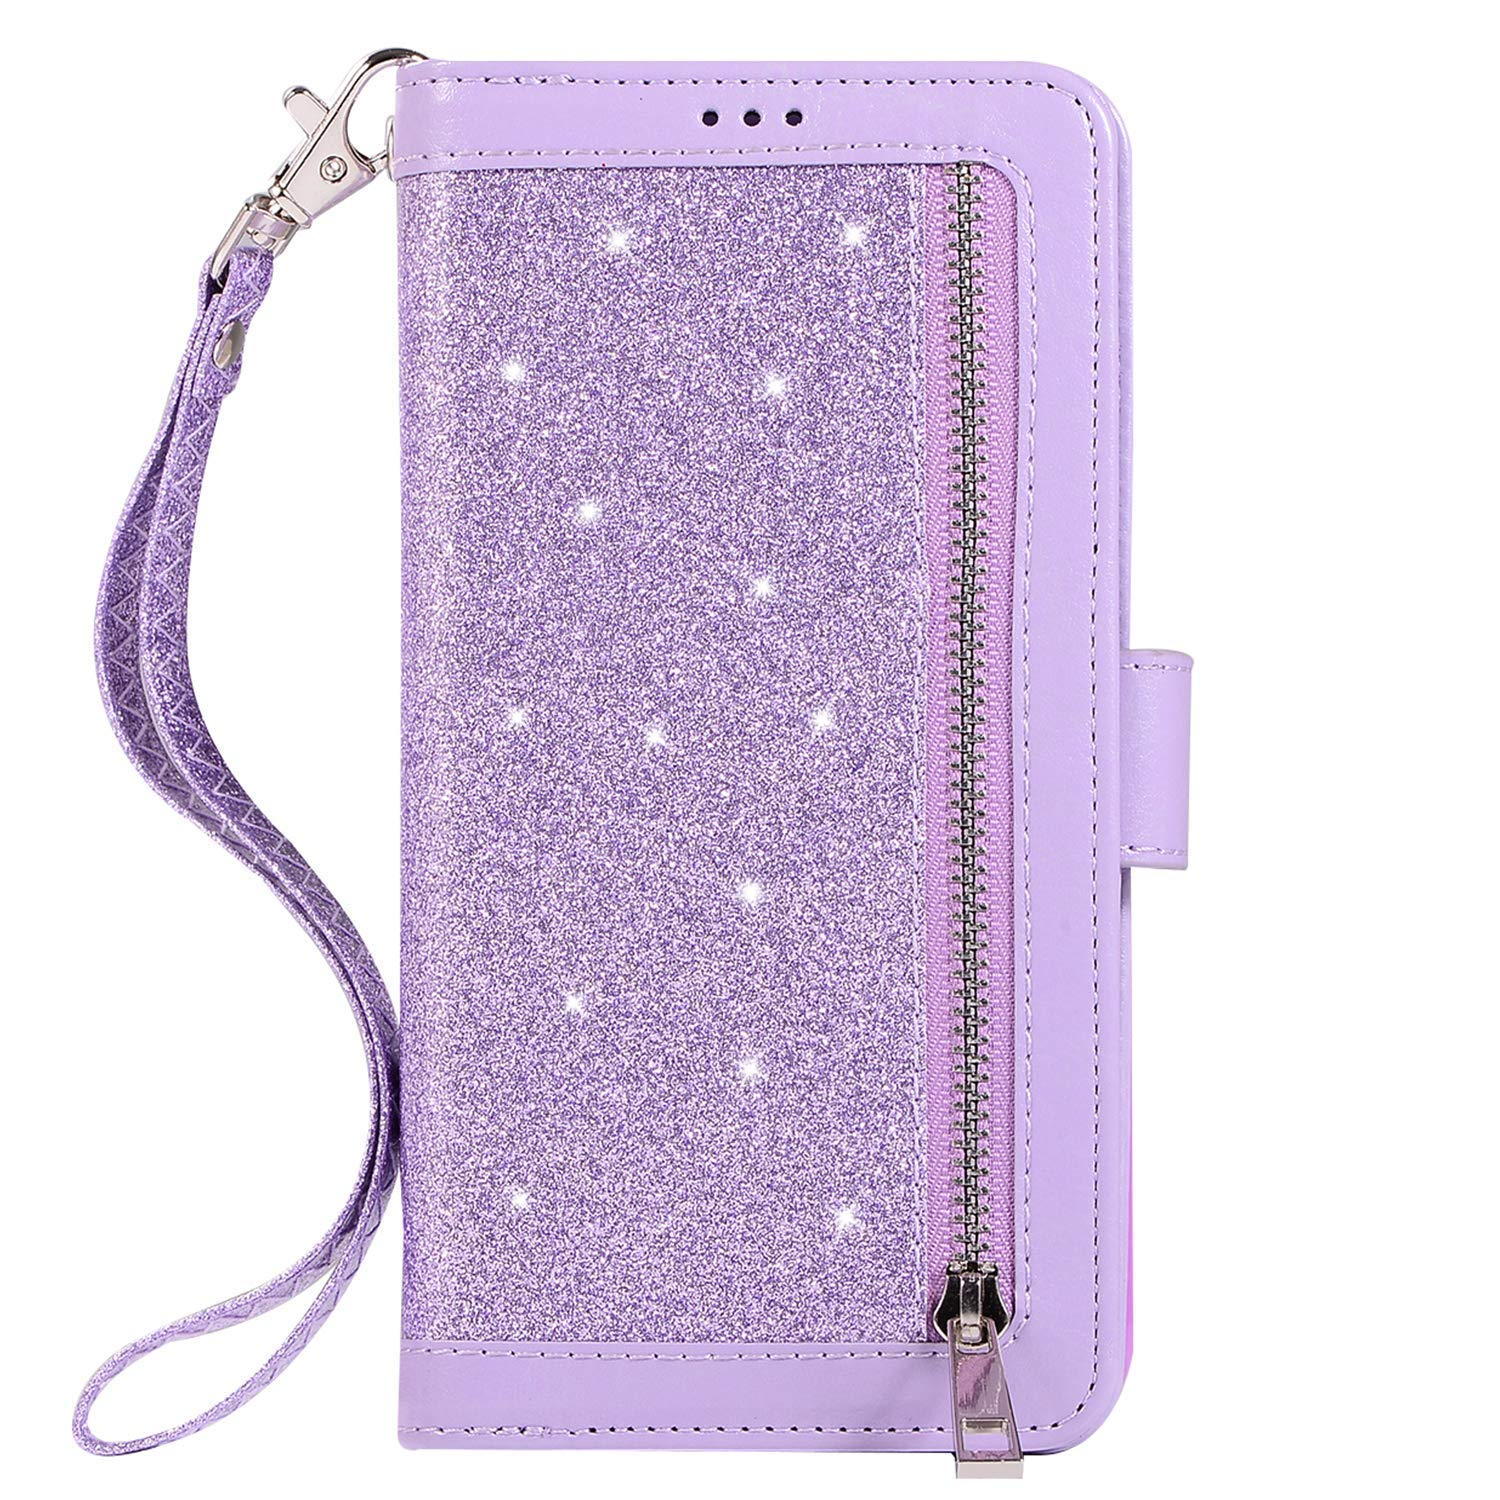 Herbests Compatible with Huawei P20 Lite Wallet Case Luxury Bling Glitter Multi-Functional Zipper Leather Flip Cover 9 Credit Card Holders Magnetic Purse Cover with Wrist Strap,Purple by Herbests